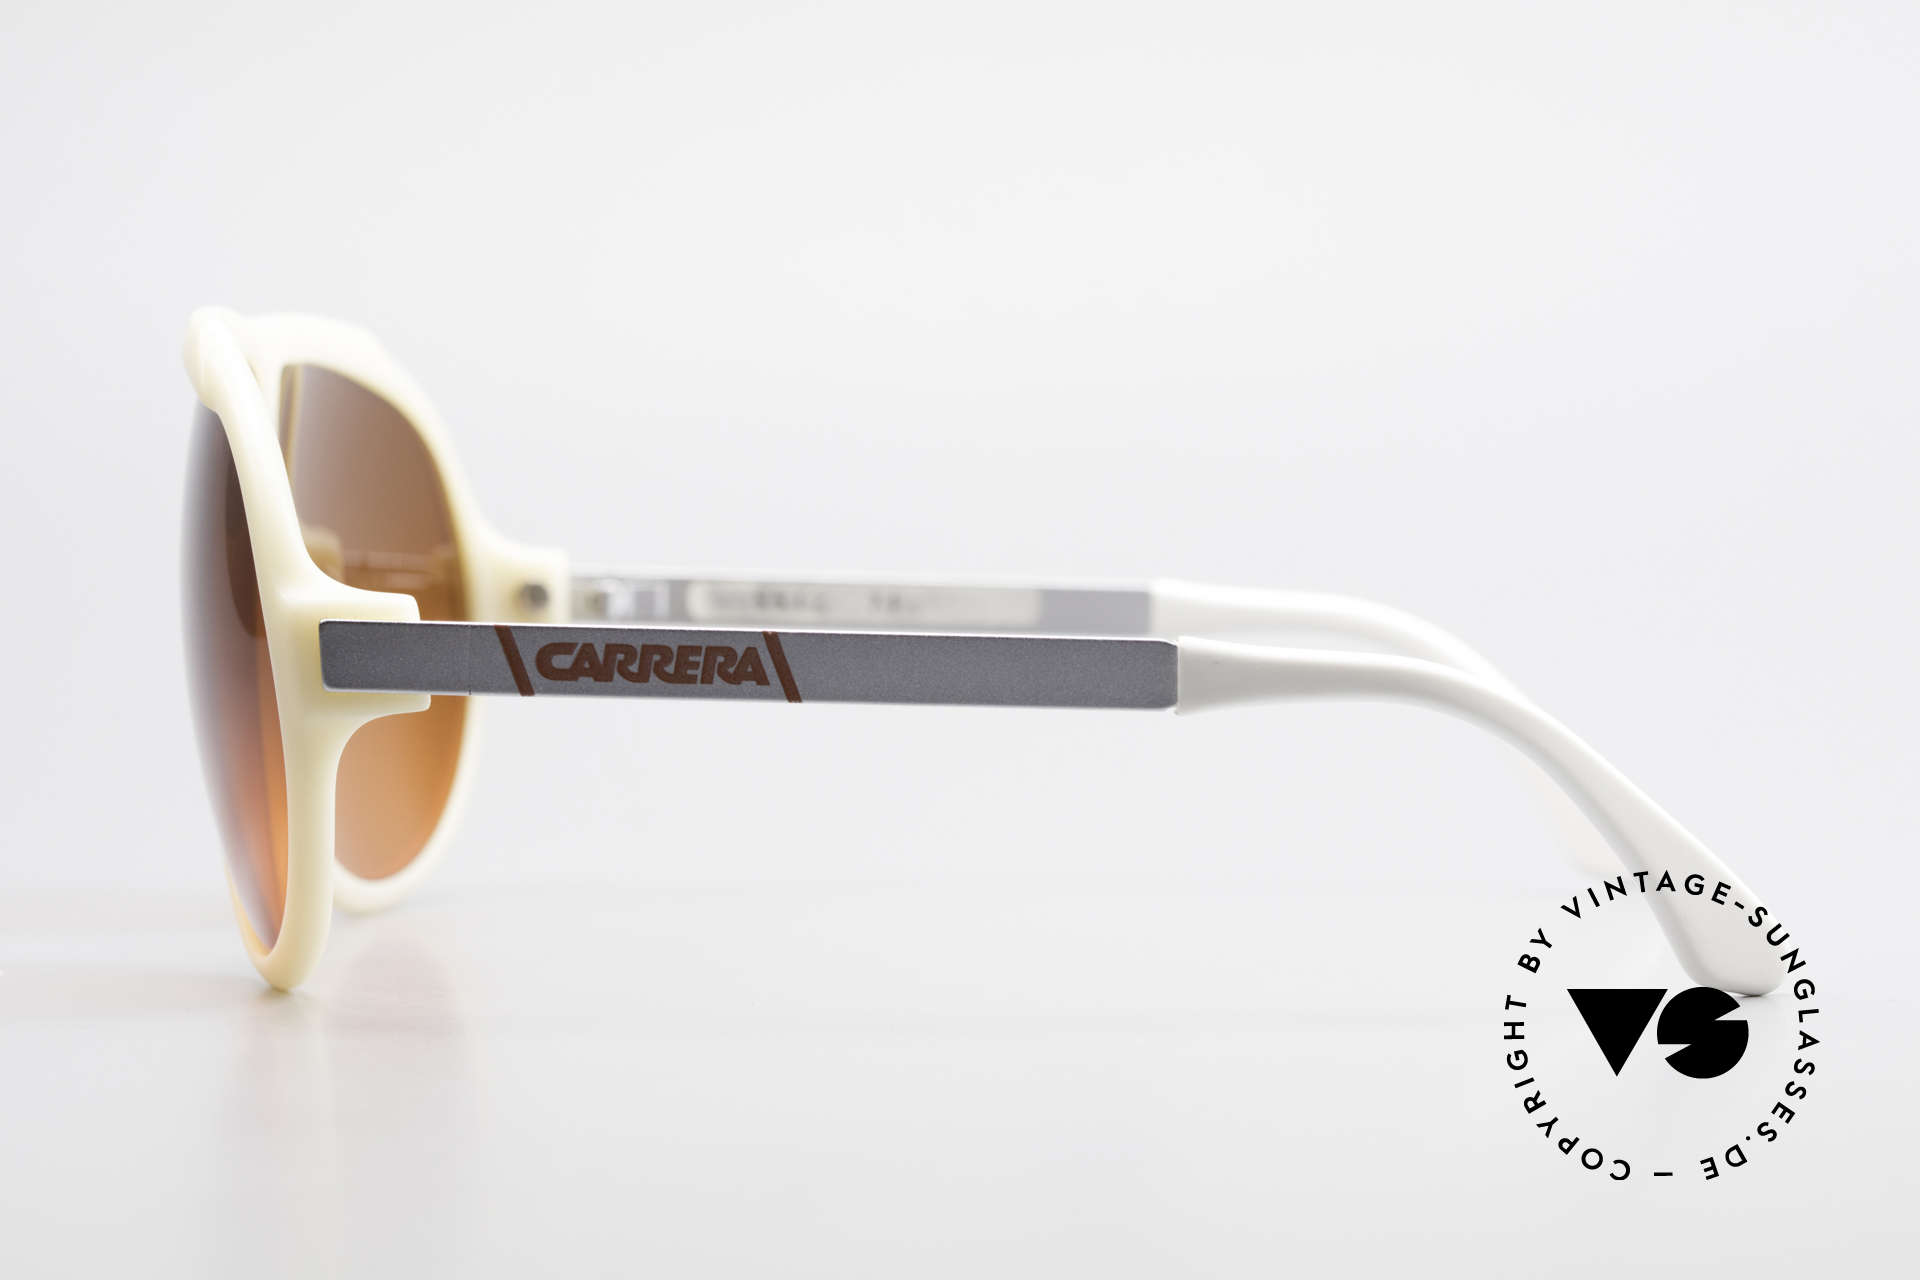 Carrera 5512 Miami Vice Sunset Sunglasses, cult object and sought-after collector's item, worldwide, Made for Men